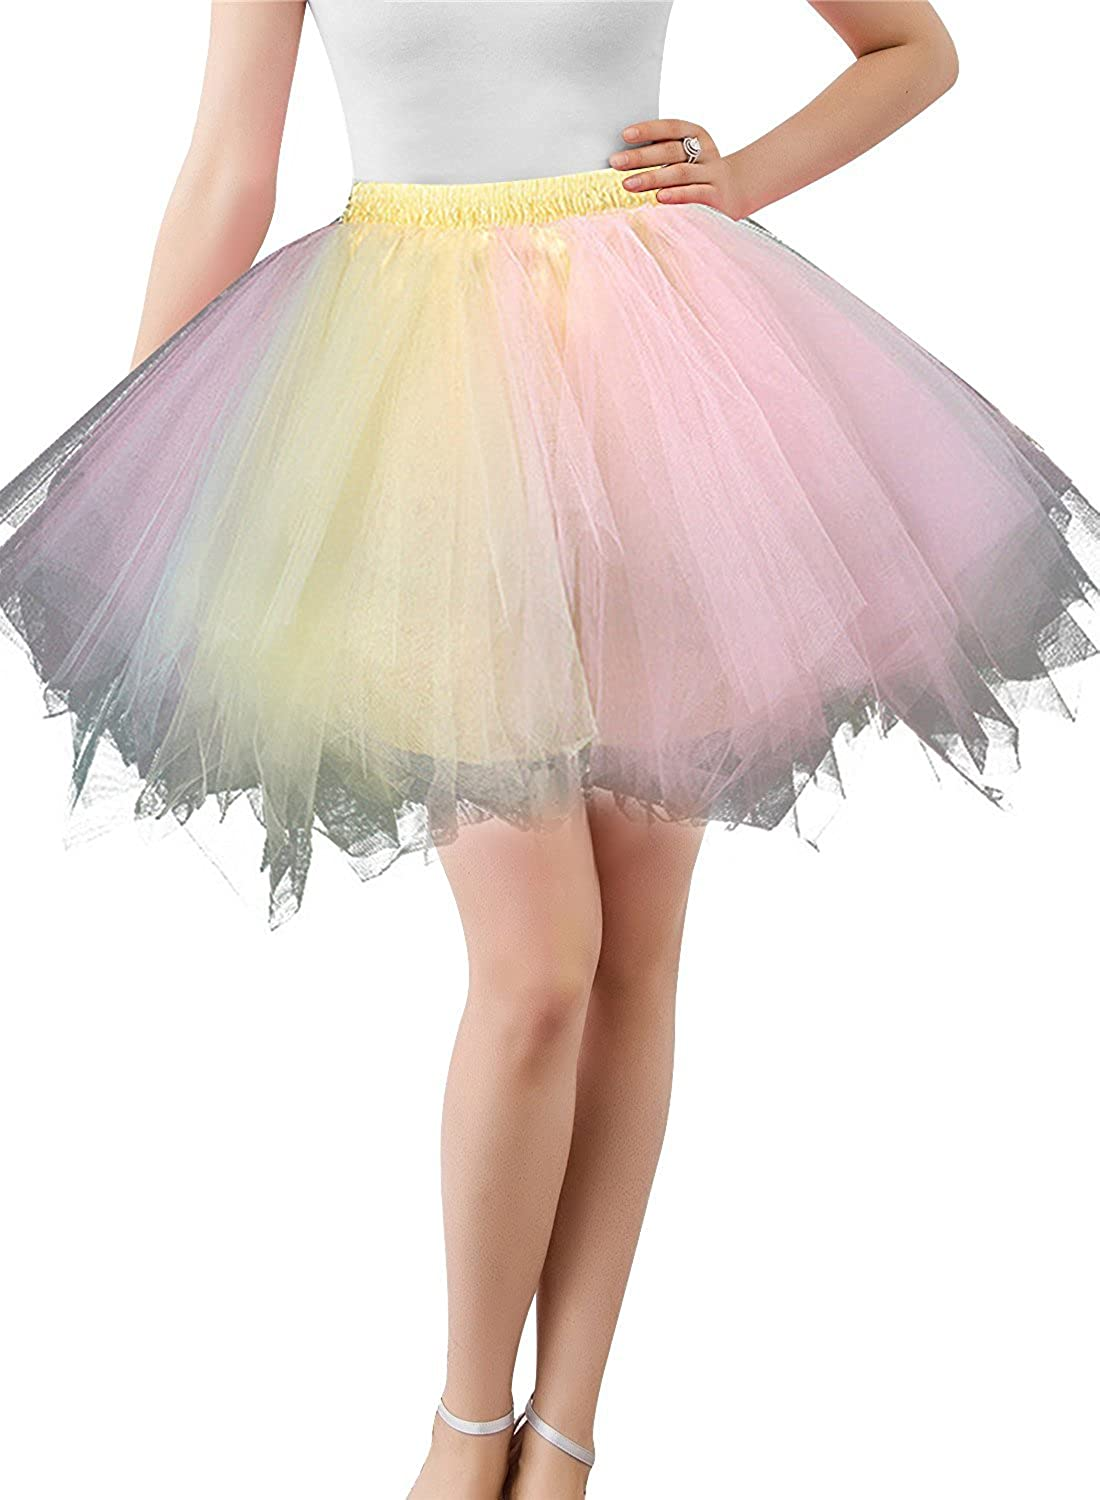 95532702a It\'s very fluffy and it has a lined slip,so you don\'t have to worry about  shorts to wear underneath. There is enough stretch in the elastic band.